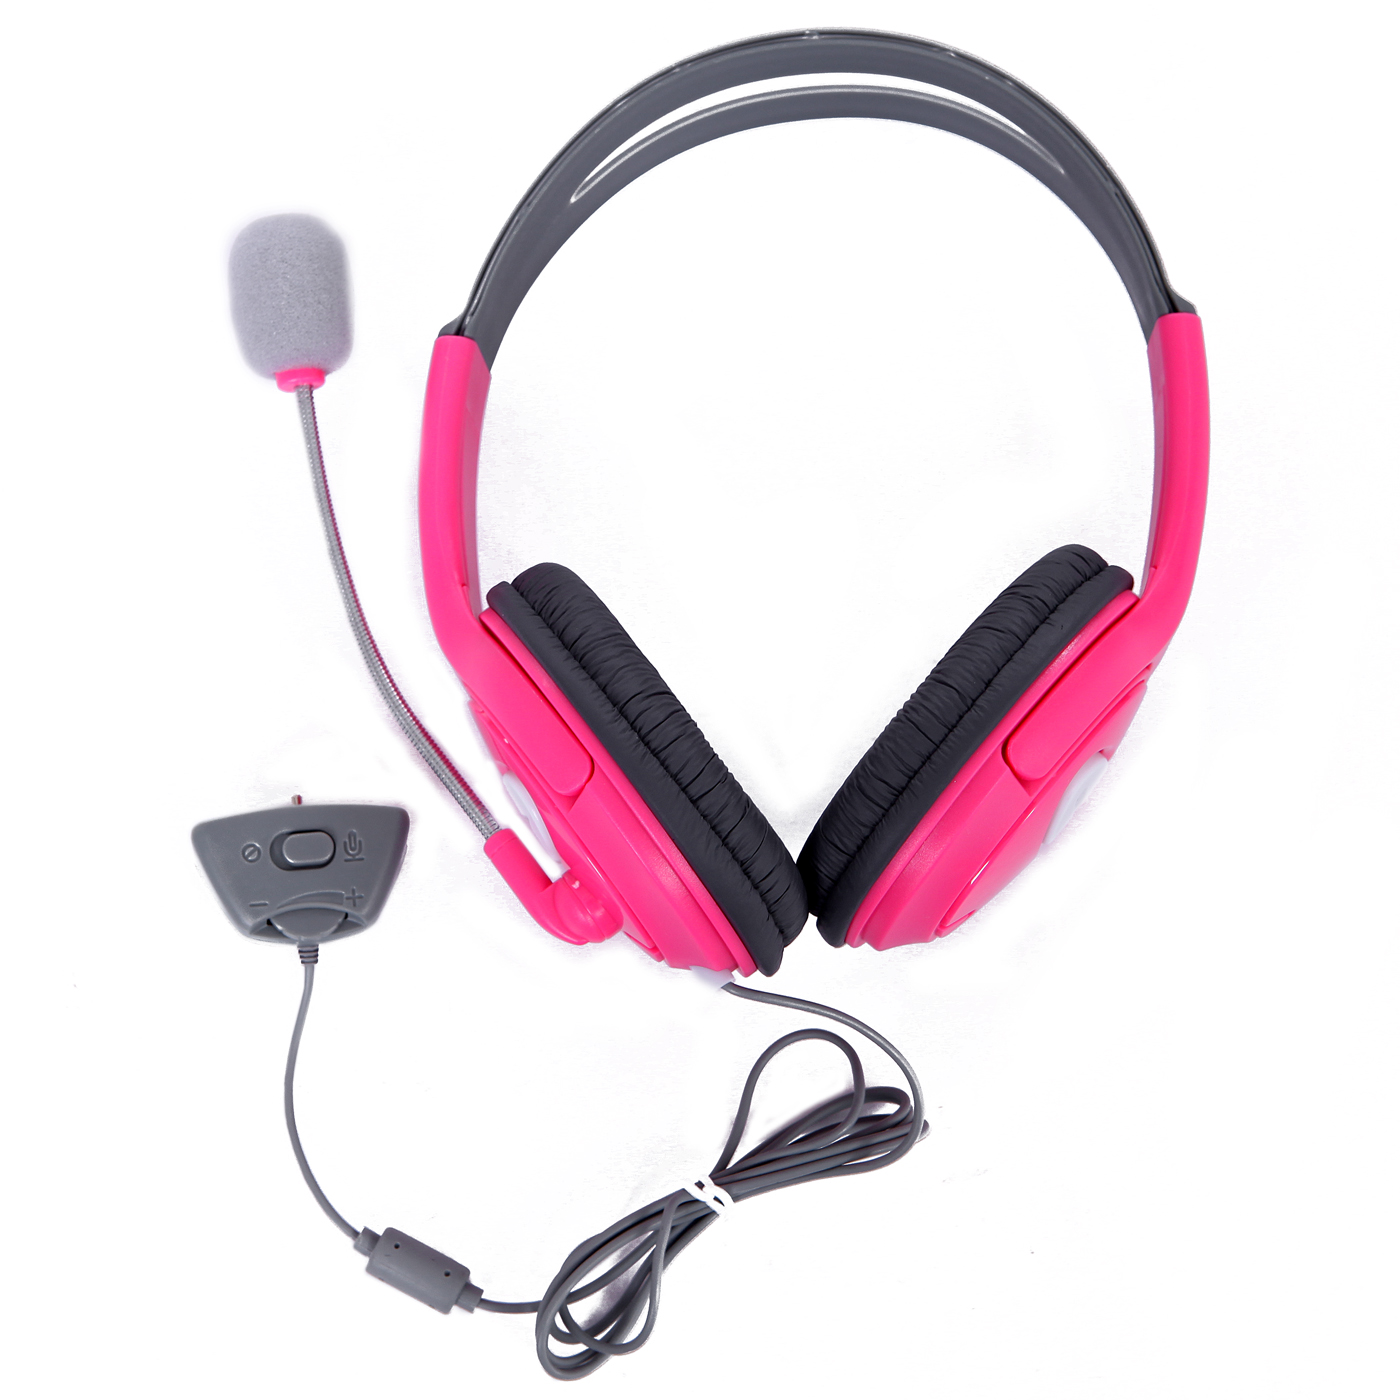 HDE Xbox 360 Gaming Chat Headset with Microphone for Xbox Live - Pink